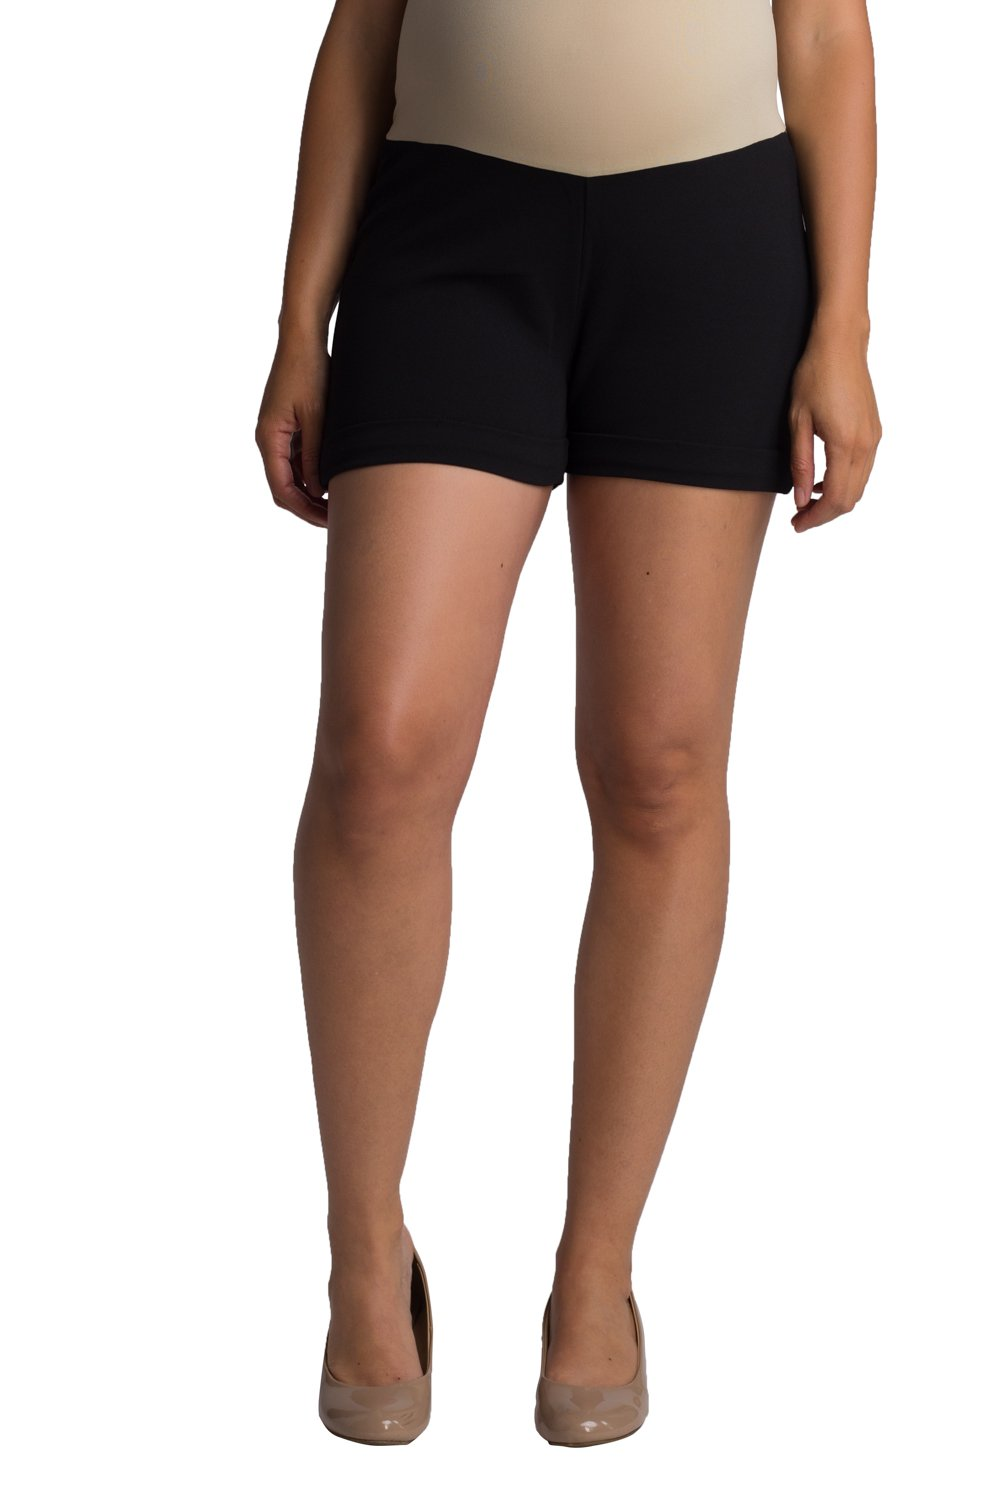 Ellie Flora Women's Over The Belly Super Soft Rayon Ponte Back Sweet Heart Shape Butt Lift Maternity Shorts